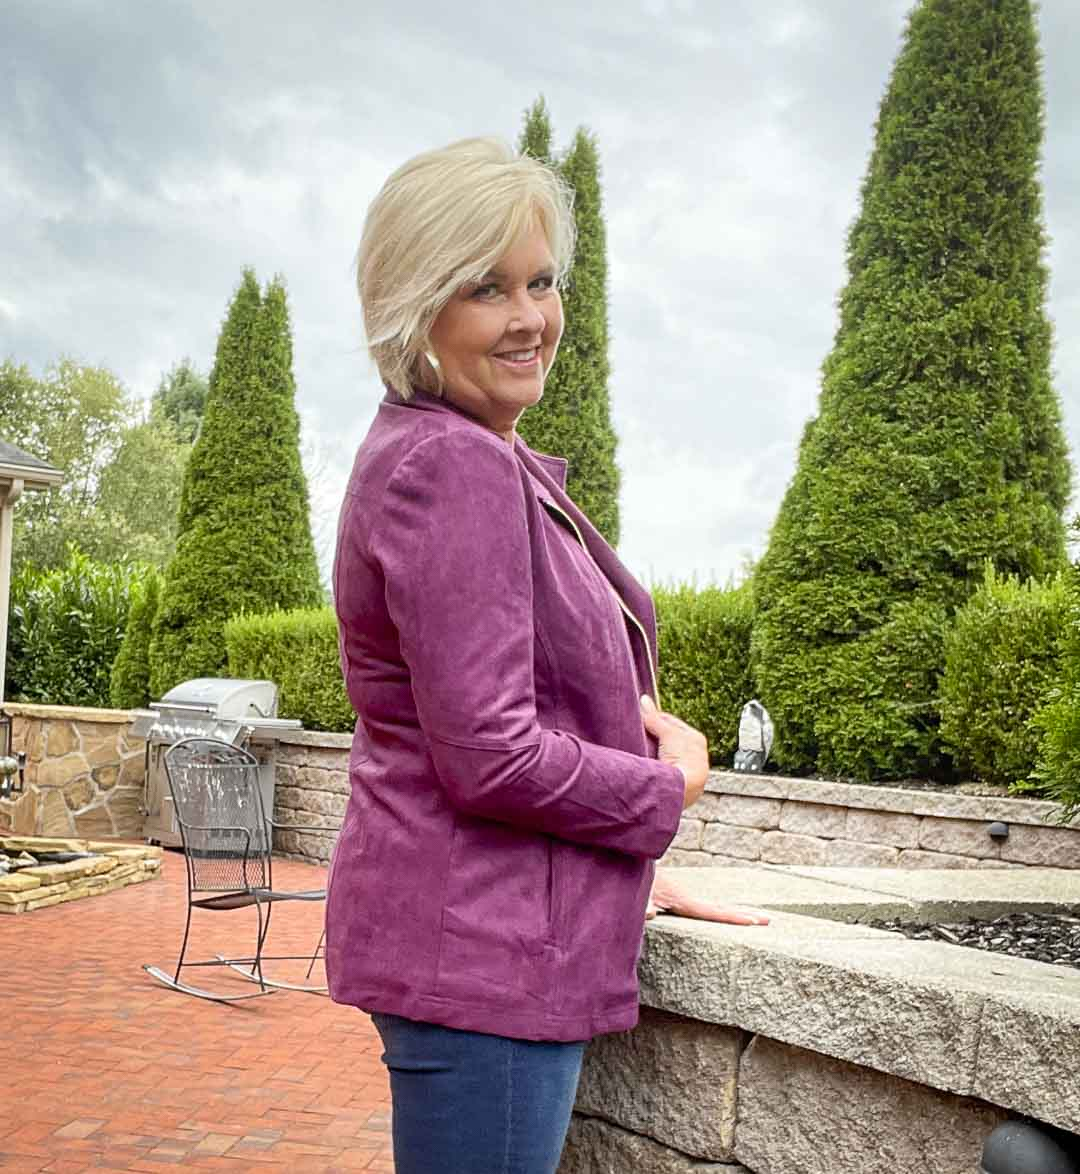 Over 40 fashion blogger, Tania Stephens is showing the side of a plum moto jacket from Chico's